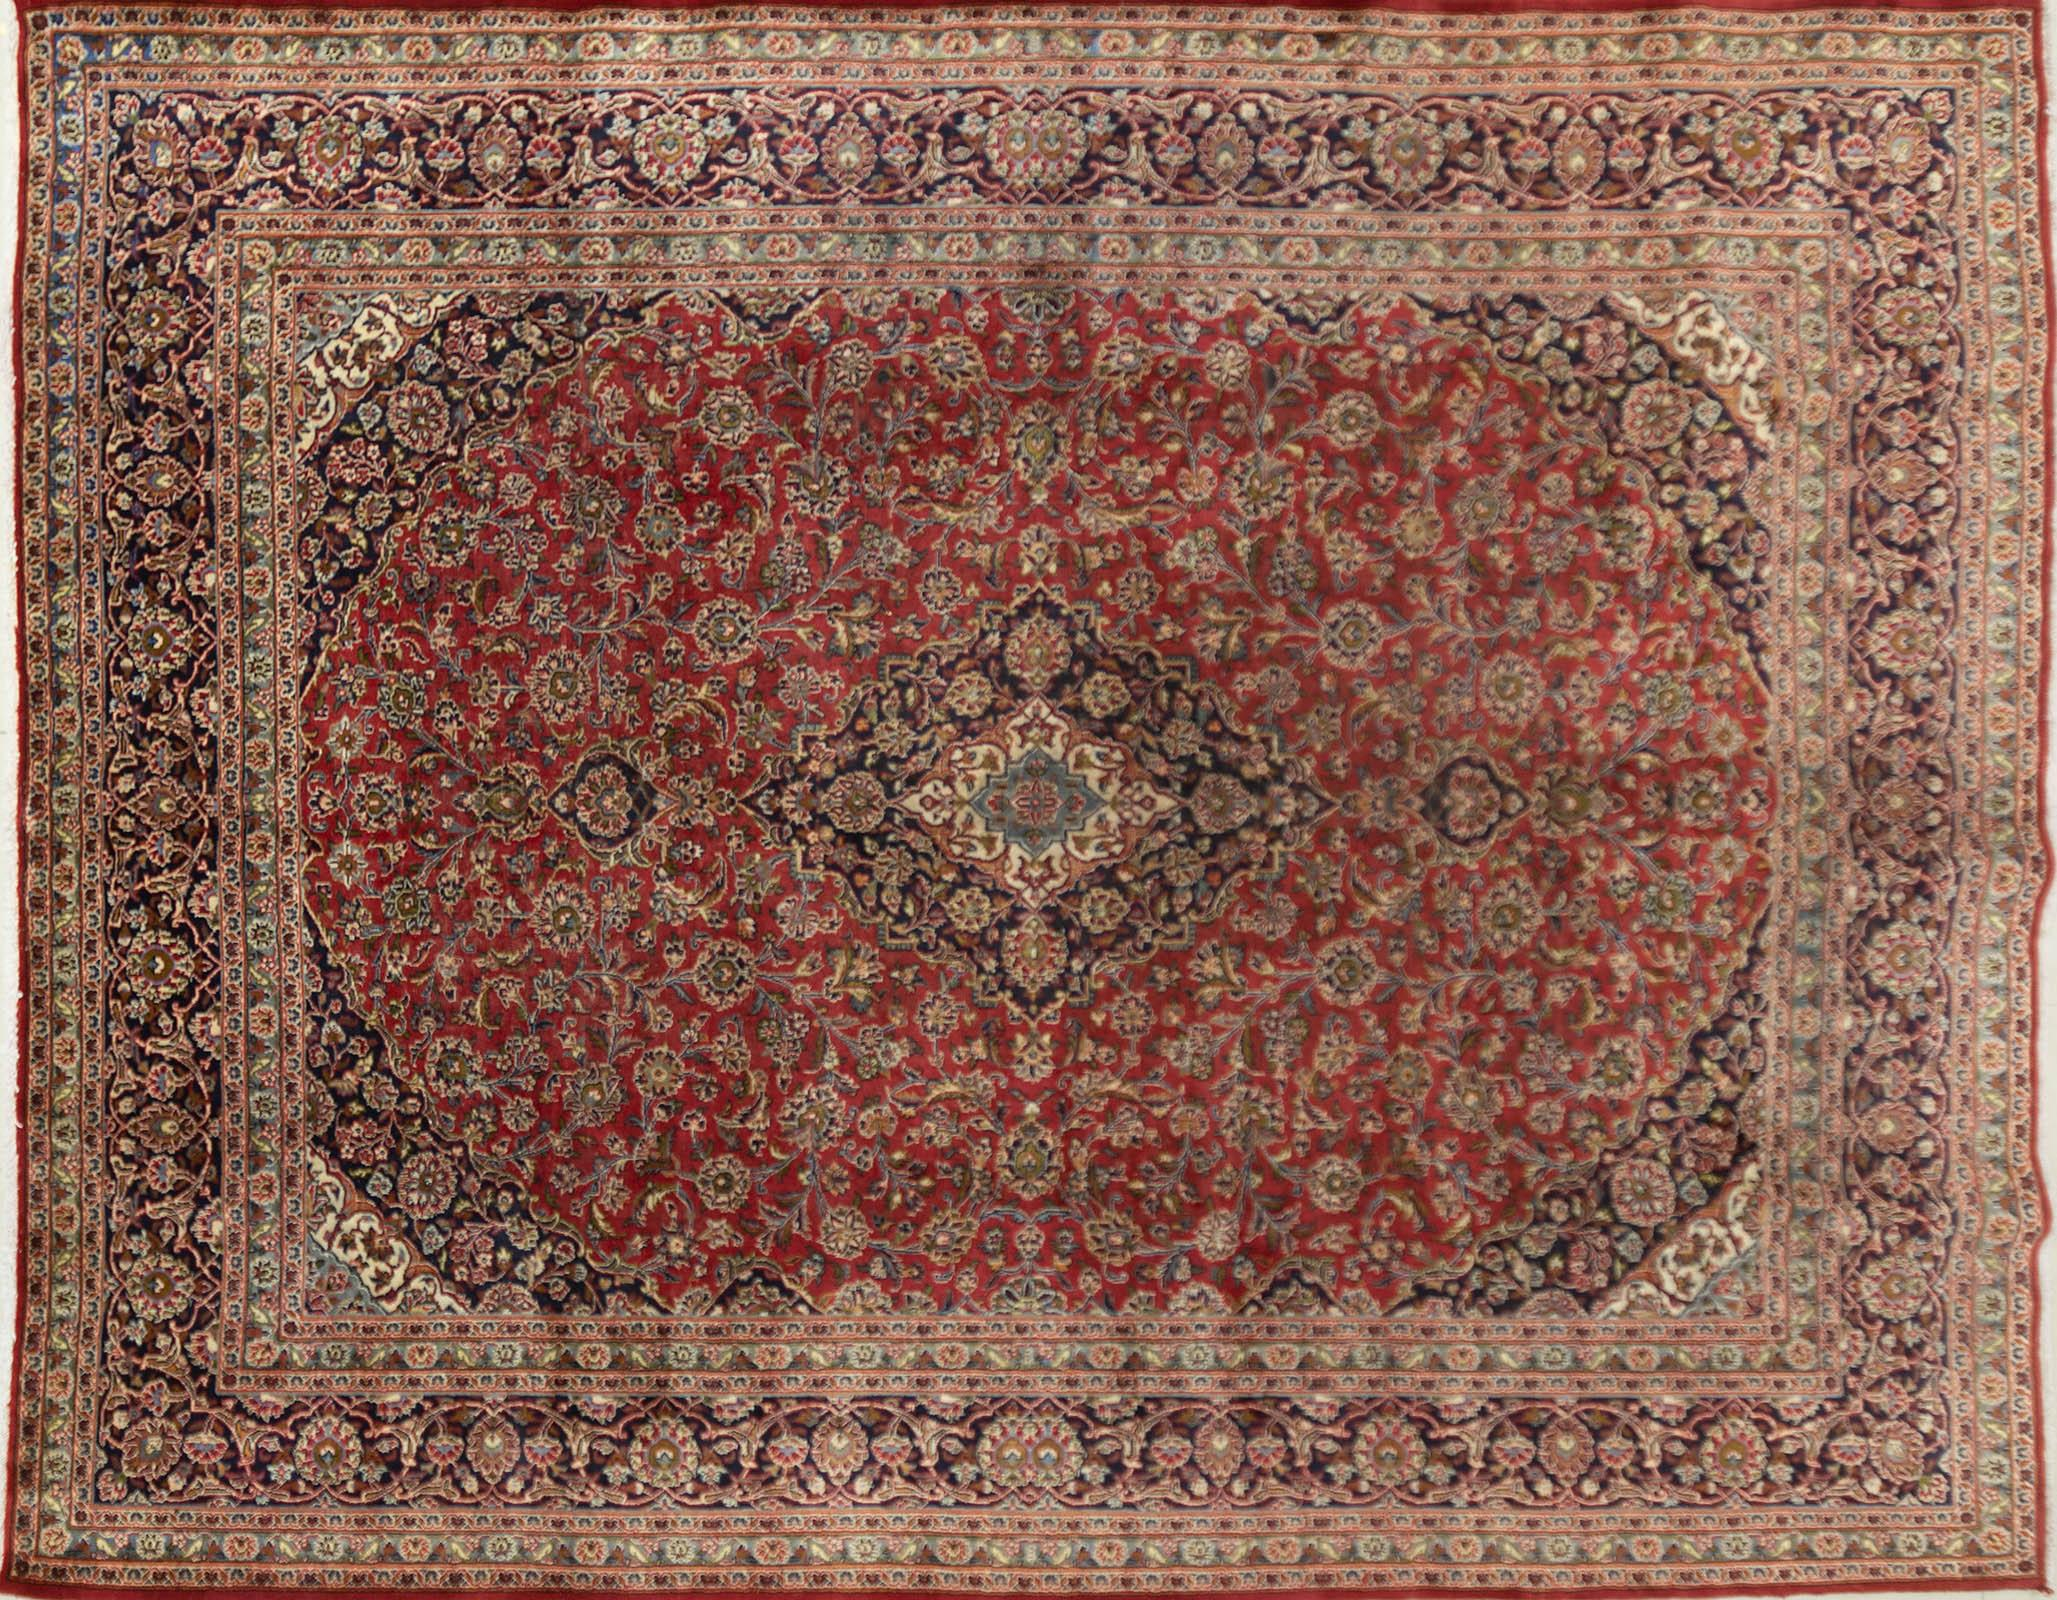 A Persian Hand Knotted Mashad Carpet, 377 x 295